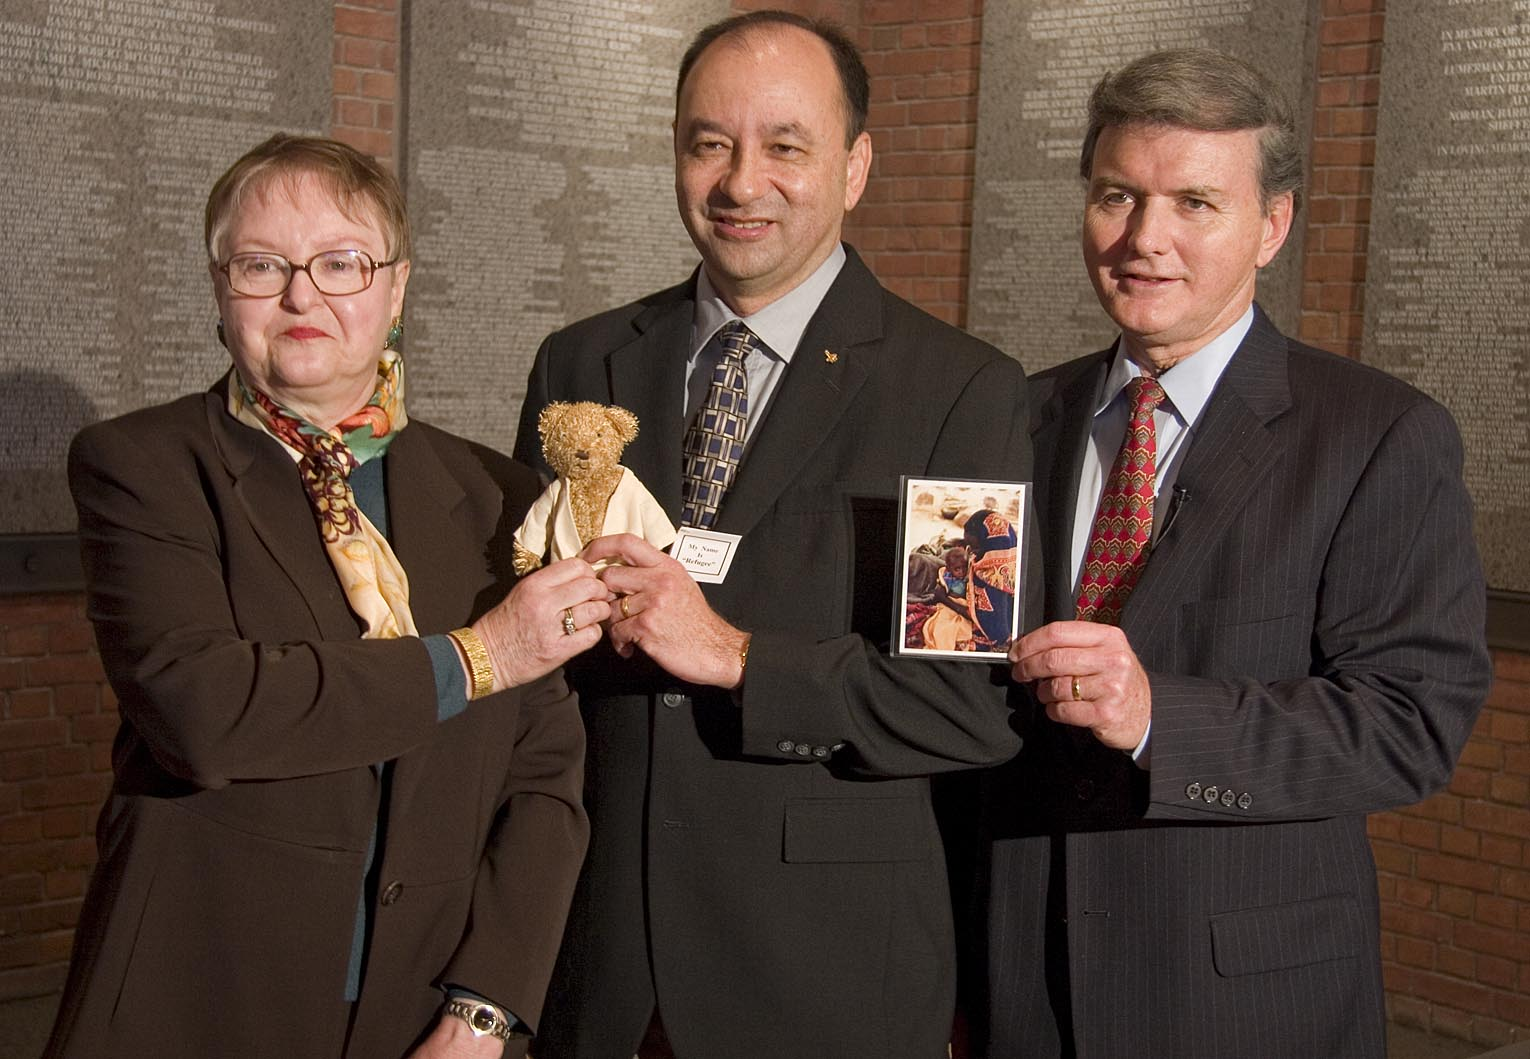 """Dr. Sophie Turner-Zaretsky, Space Shuttle Discovery Commander Mark Polansky , and United States Holocaust Memorial Museum chief of staff Bill Parsons. They  are holding a replica of """"Refugee"""" bear and a photo of a Darfurian child refugee, items taken by Commander Polansky on a December 2006 Space Shuttle mission."""